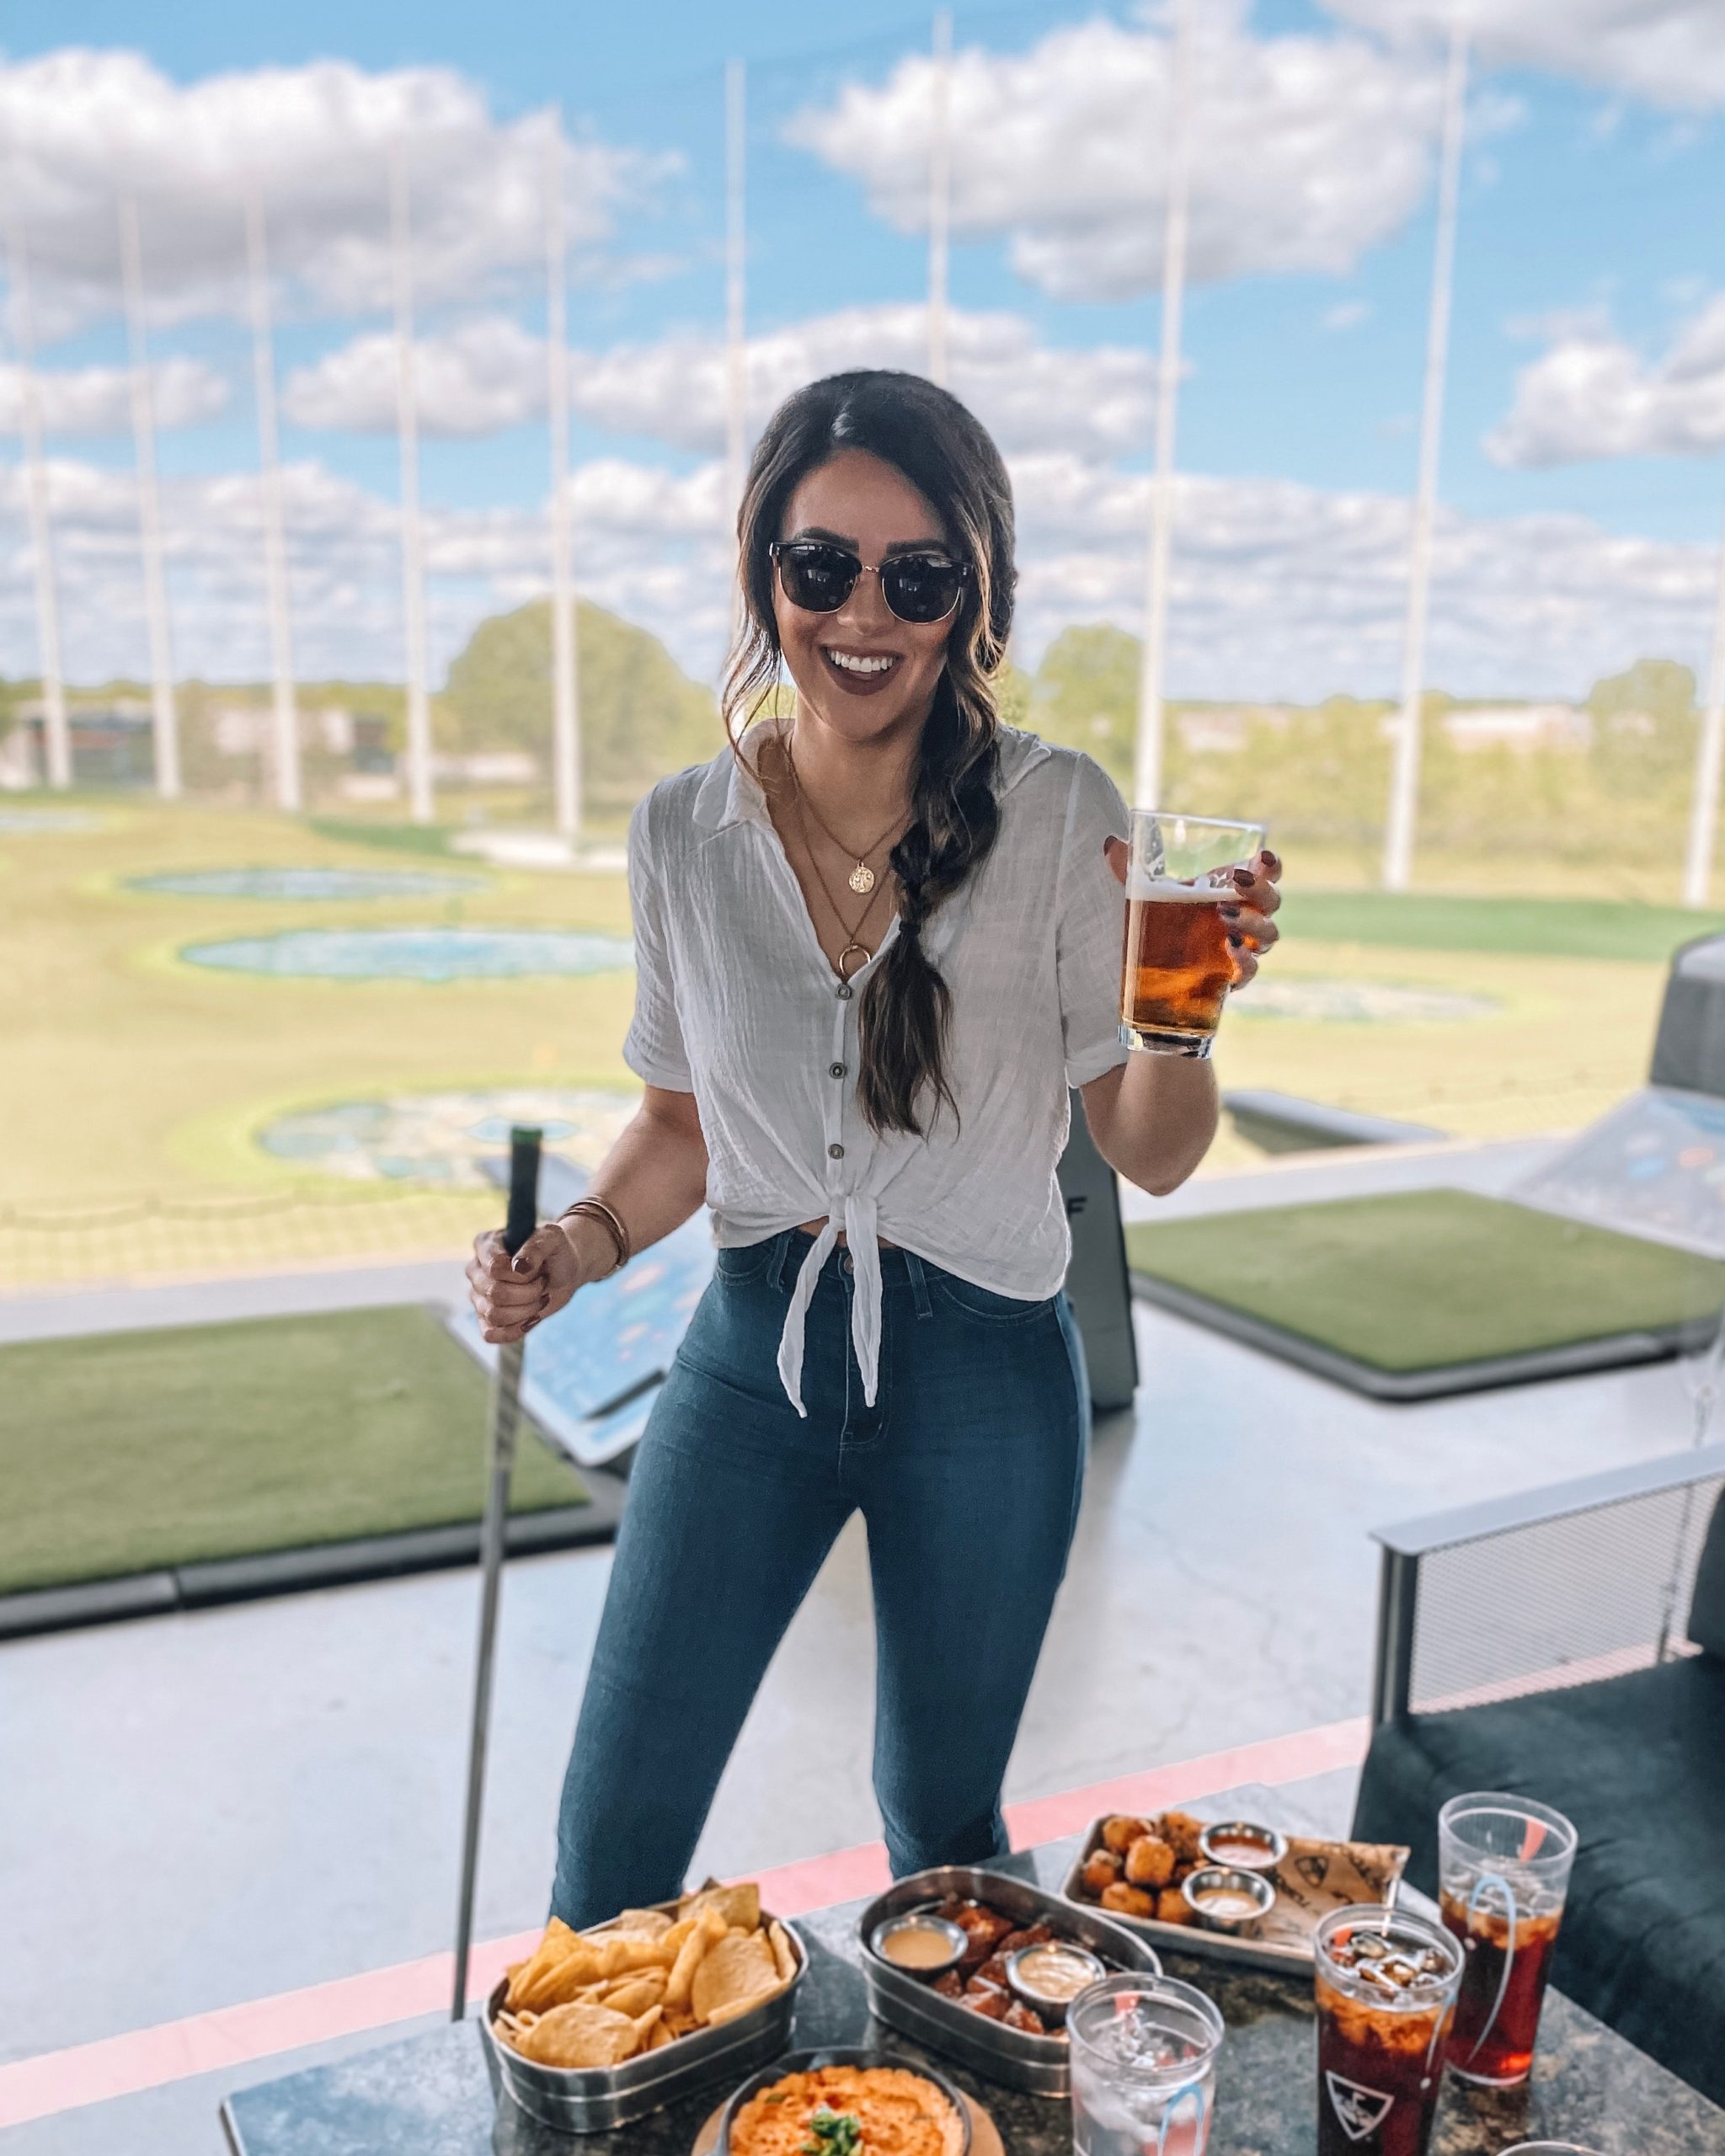 a woman smiling while holding a beer and a golf club